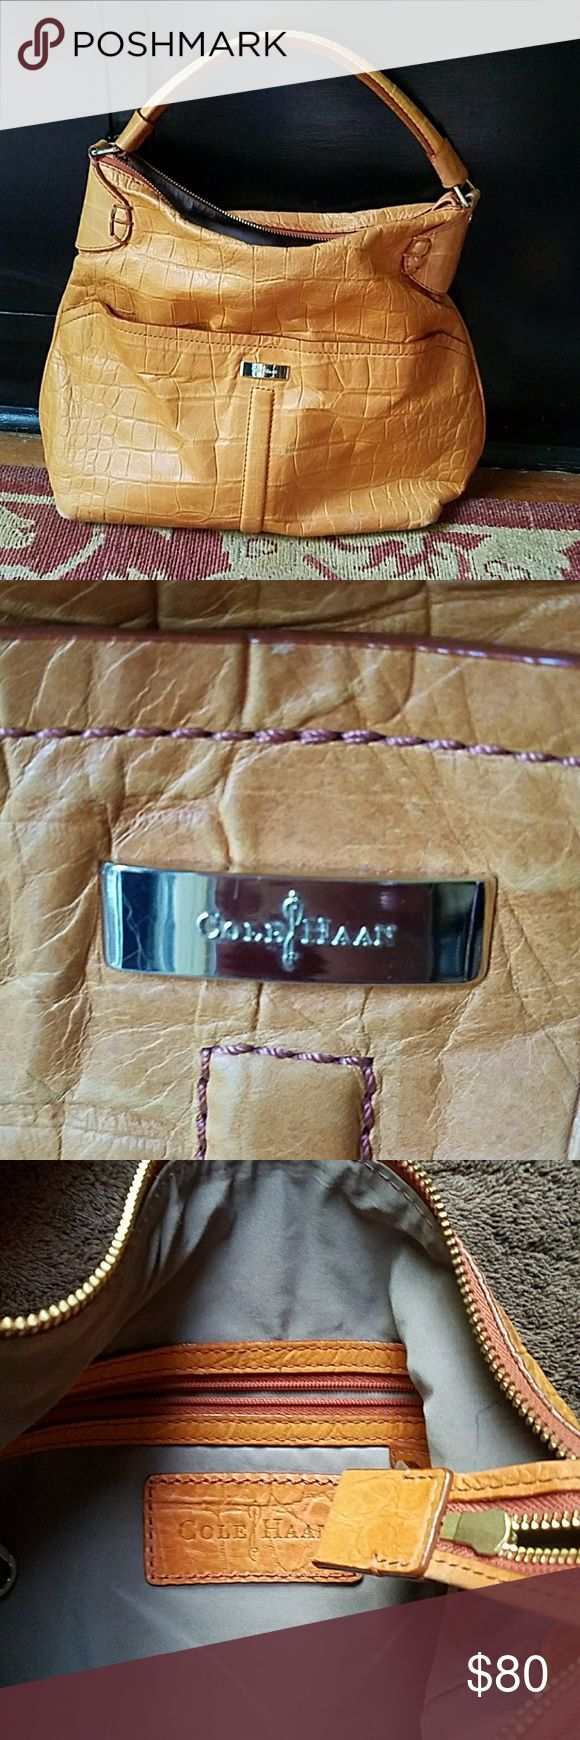 Cole Haan Tan Leather Shoulder Purse Slightly orange/tan leather purse with texture. Has two large pockets on outside and three pockets on inside. Has a few marks but still in very good shape. Cole Haan Bags Shoulder Bags